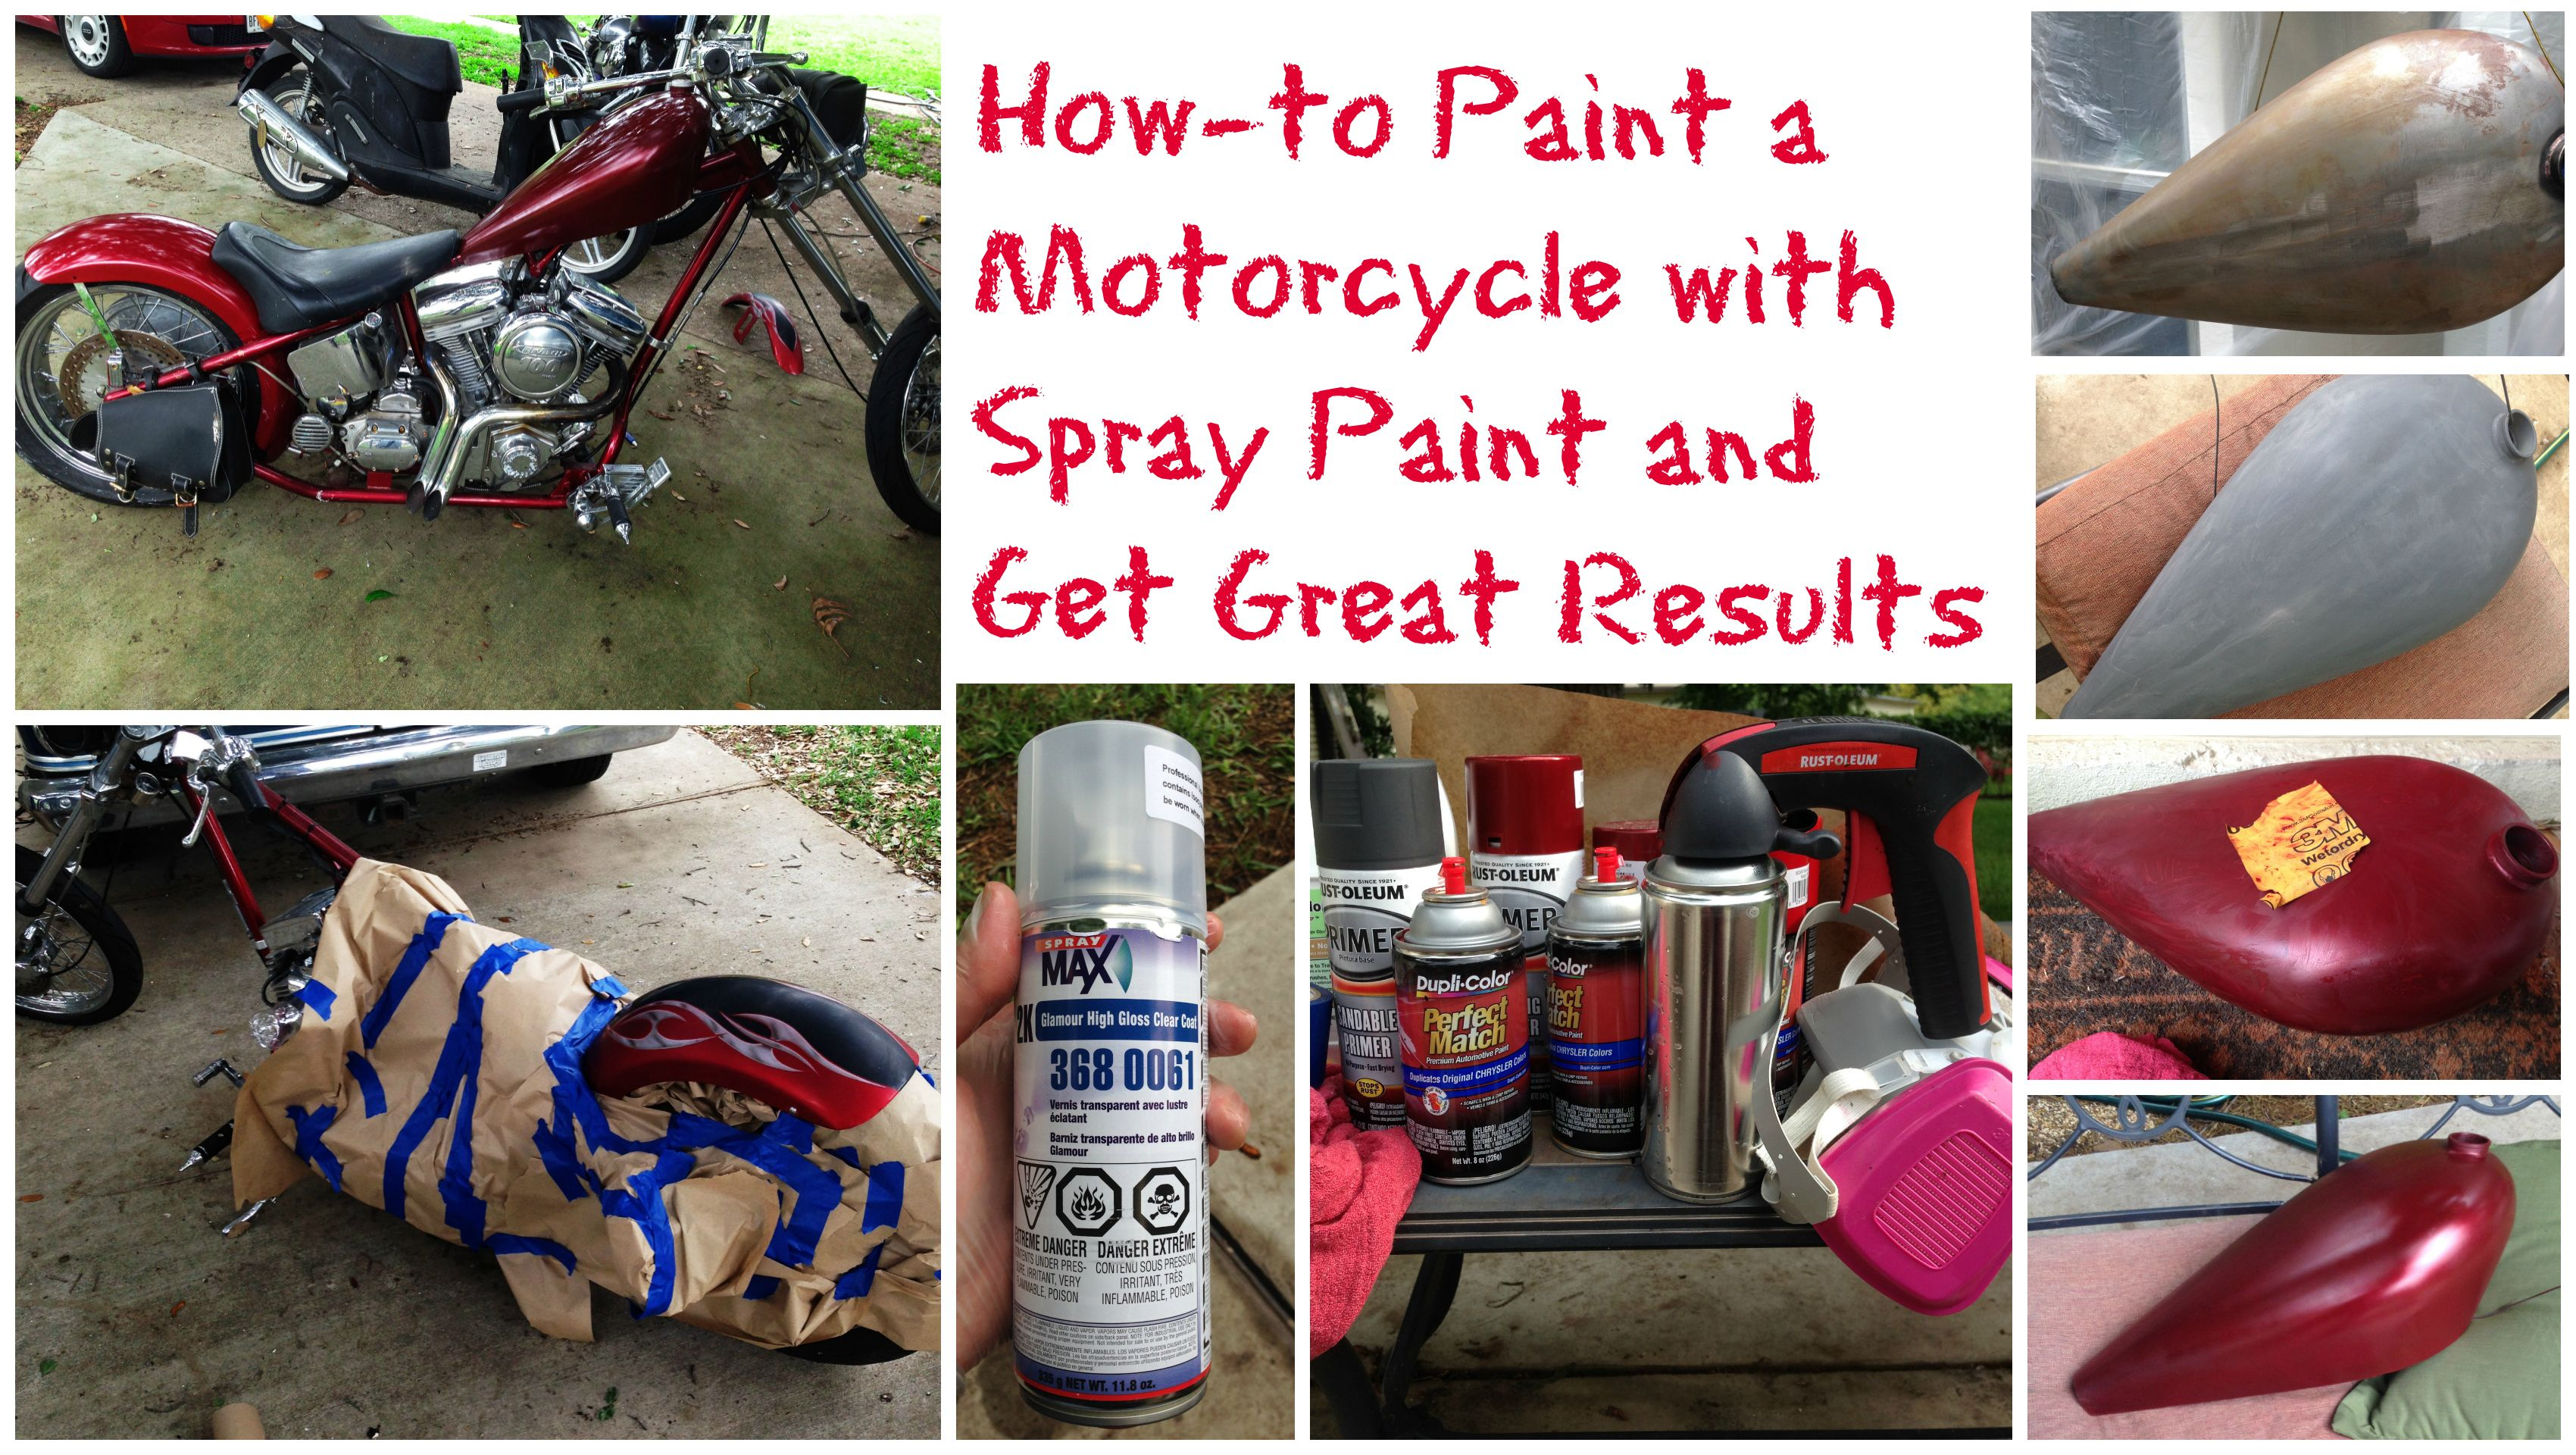 Diy howto paint a motorcycle with spray paint and get